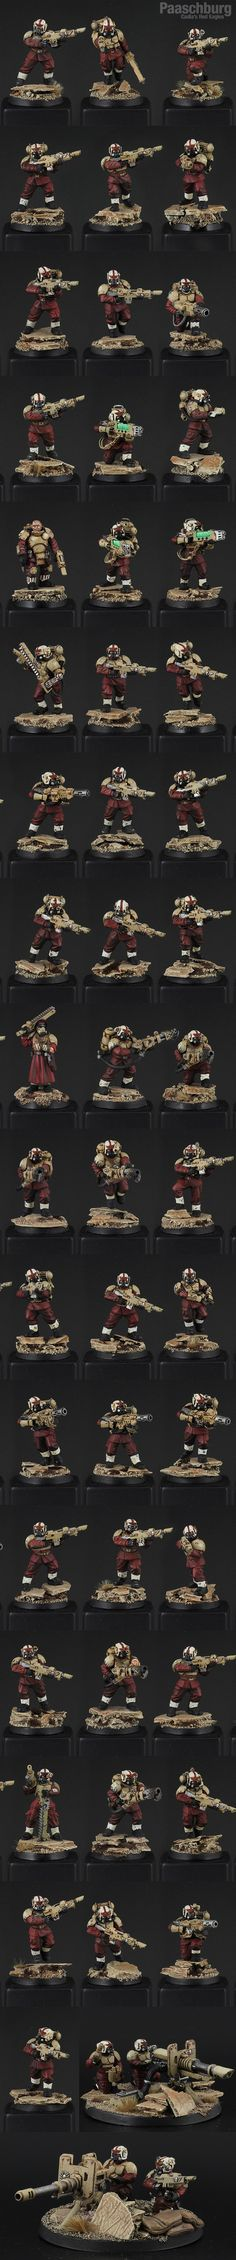 Imperial Guard Army - Cadia's Red Eagles